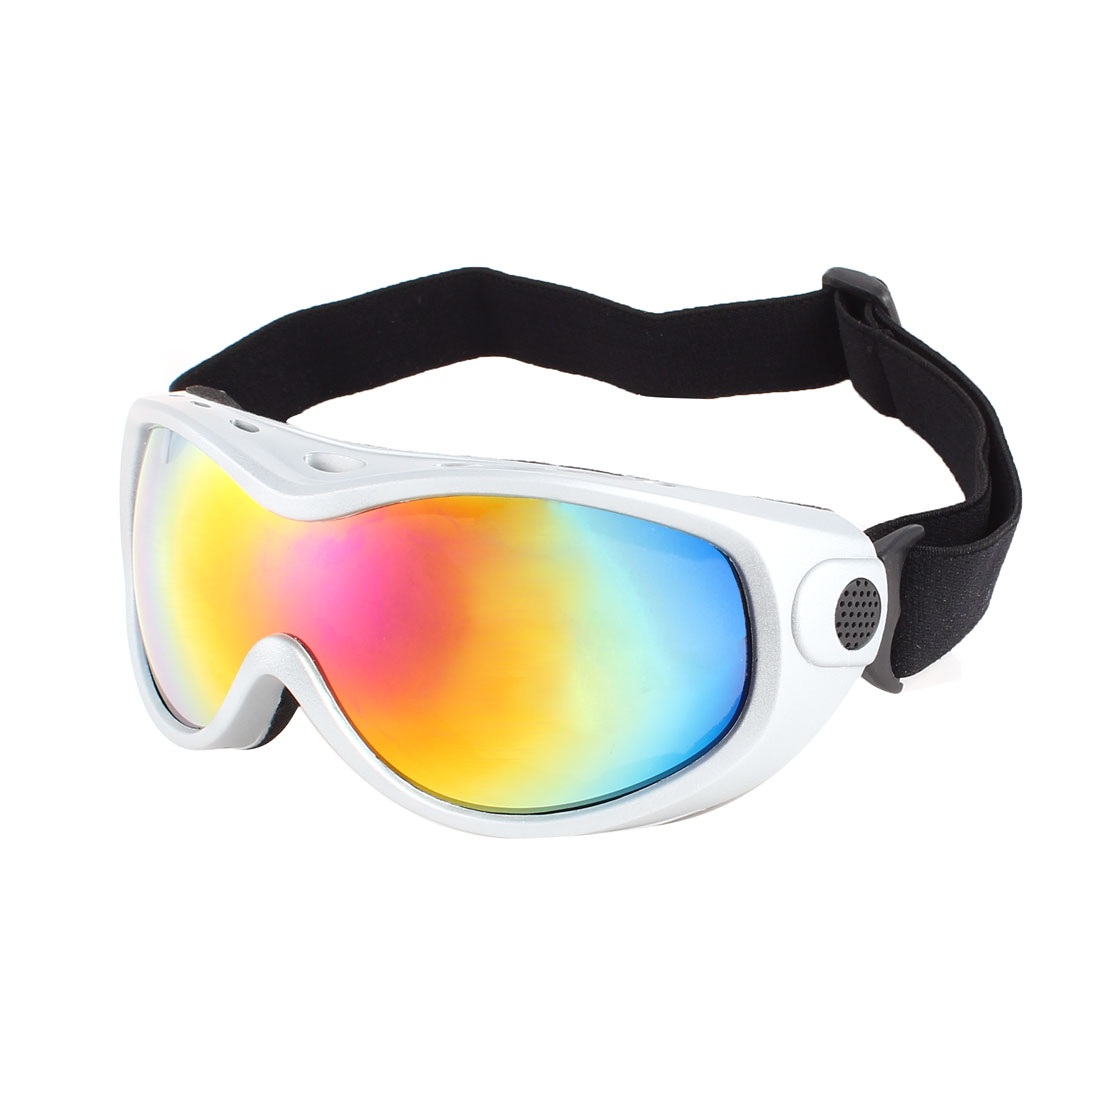 Ladies Men Colorful Airflow Lens Ventilation Safety Ski Snowboard Goggles Gray